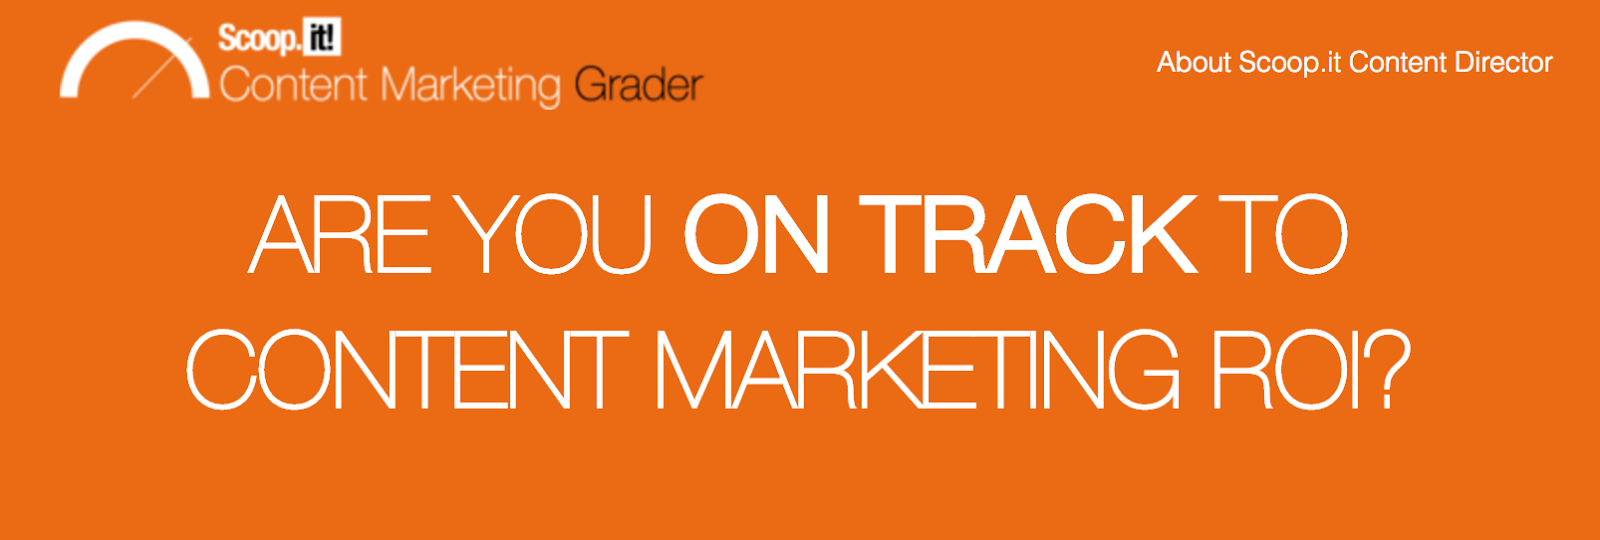 Content marketing grader